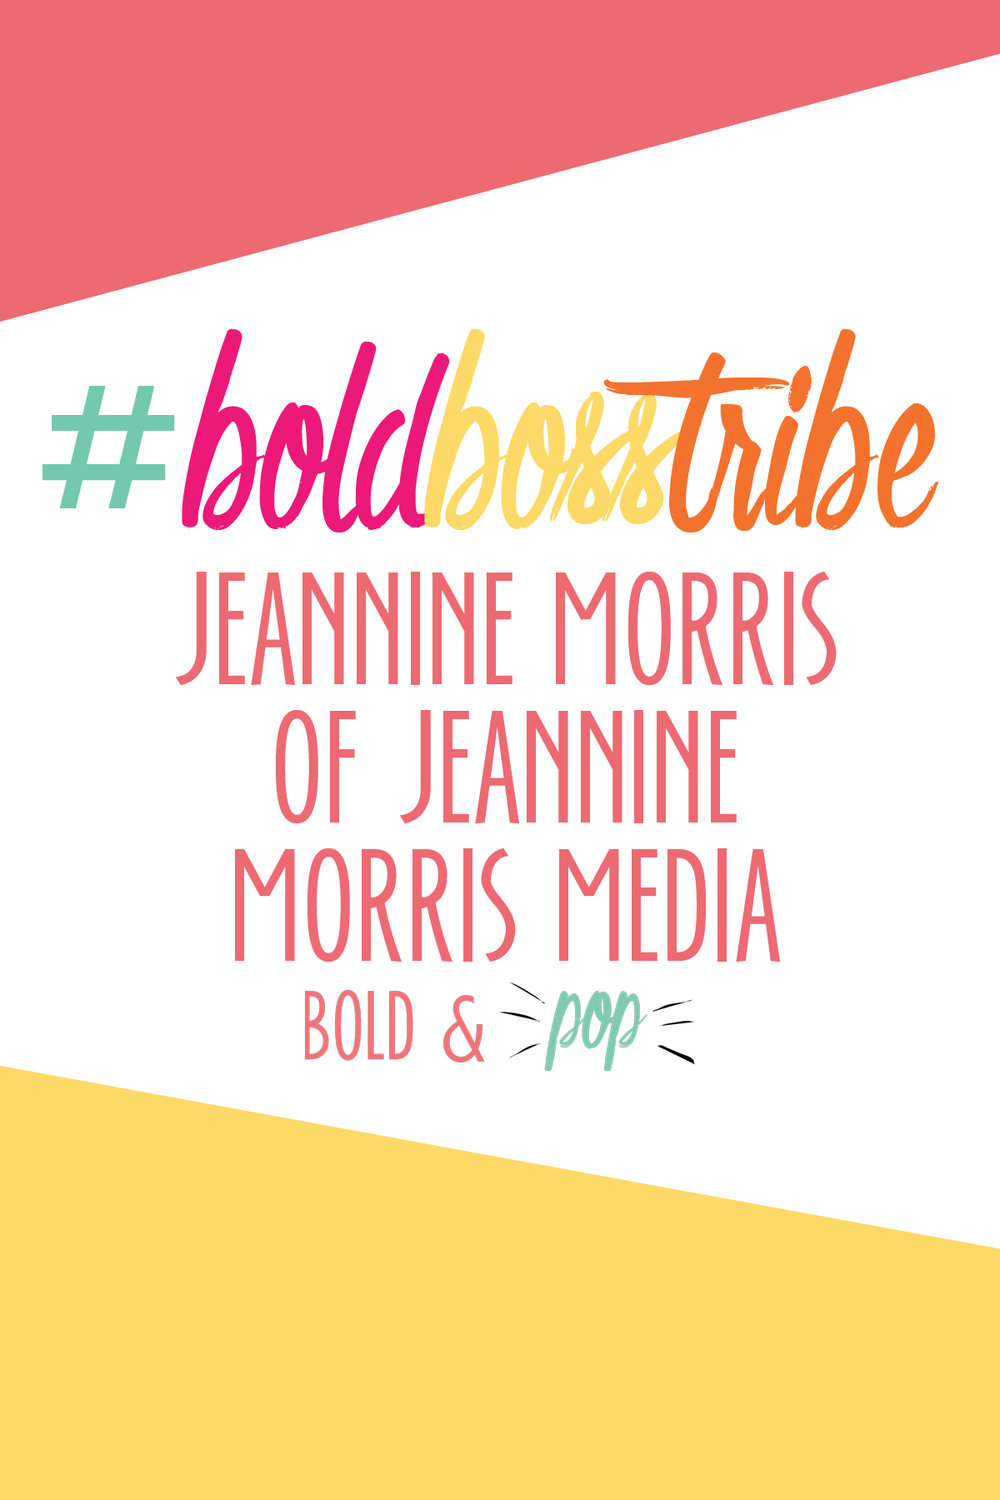 Bold & Pop :: #BoldBossTribe Feature with Jeannine Morris of Jeannine Morris Media